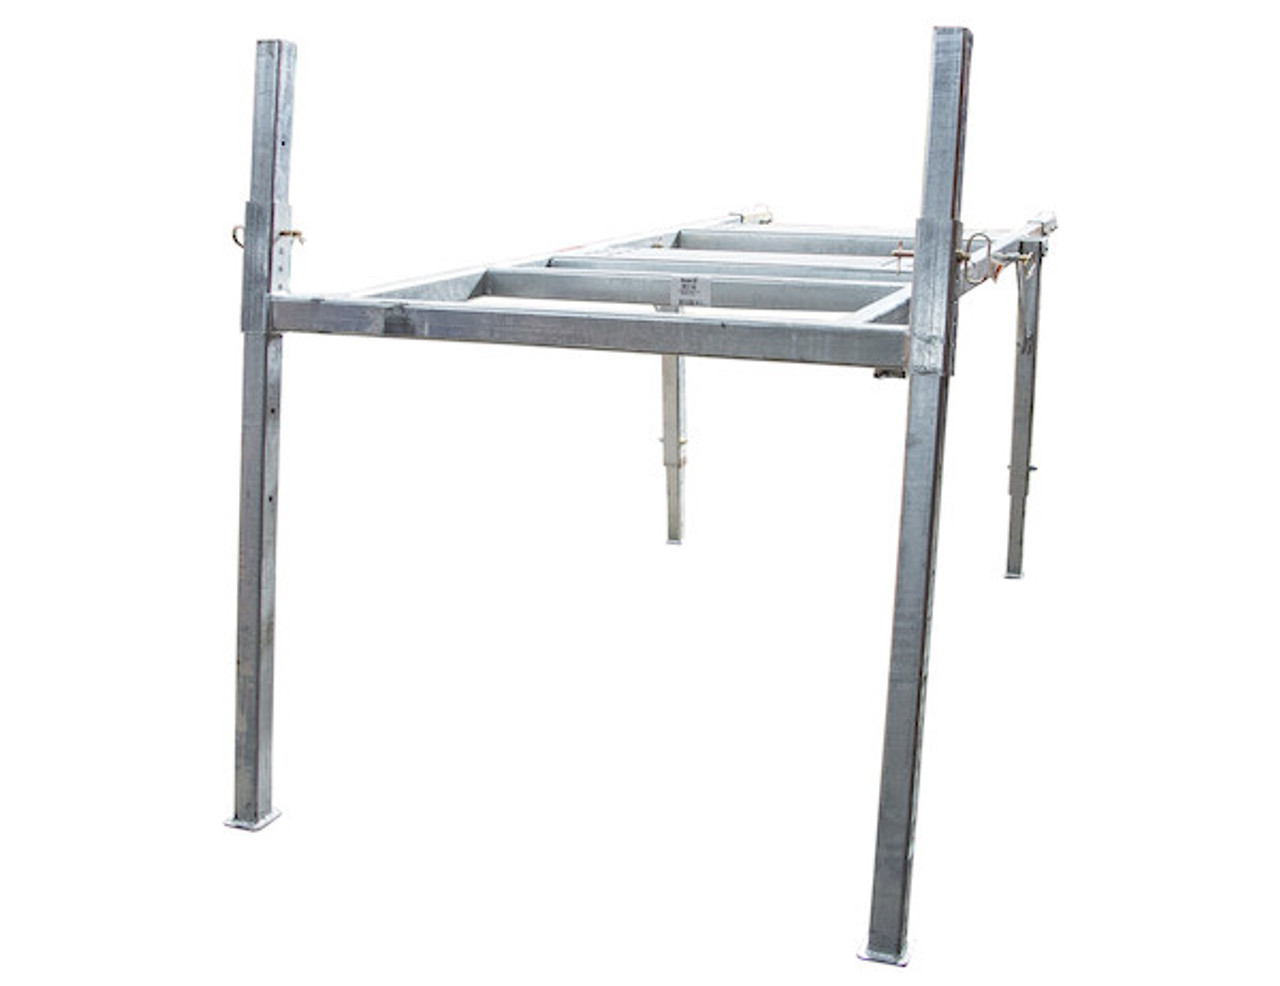 BUYERS 3037146 8 Foot Mid-Size Hot-Dipped Galvanized Spreader Stand for SaltDogg Spreader 1